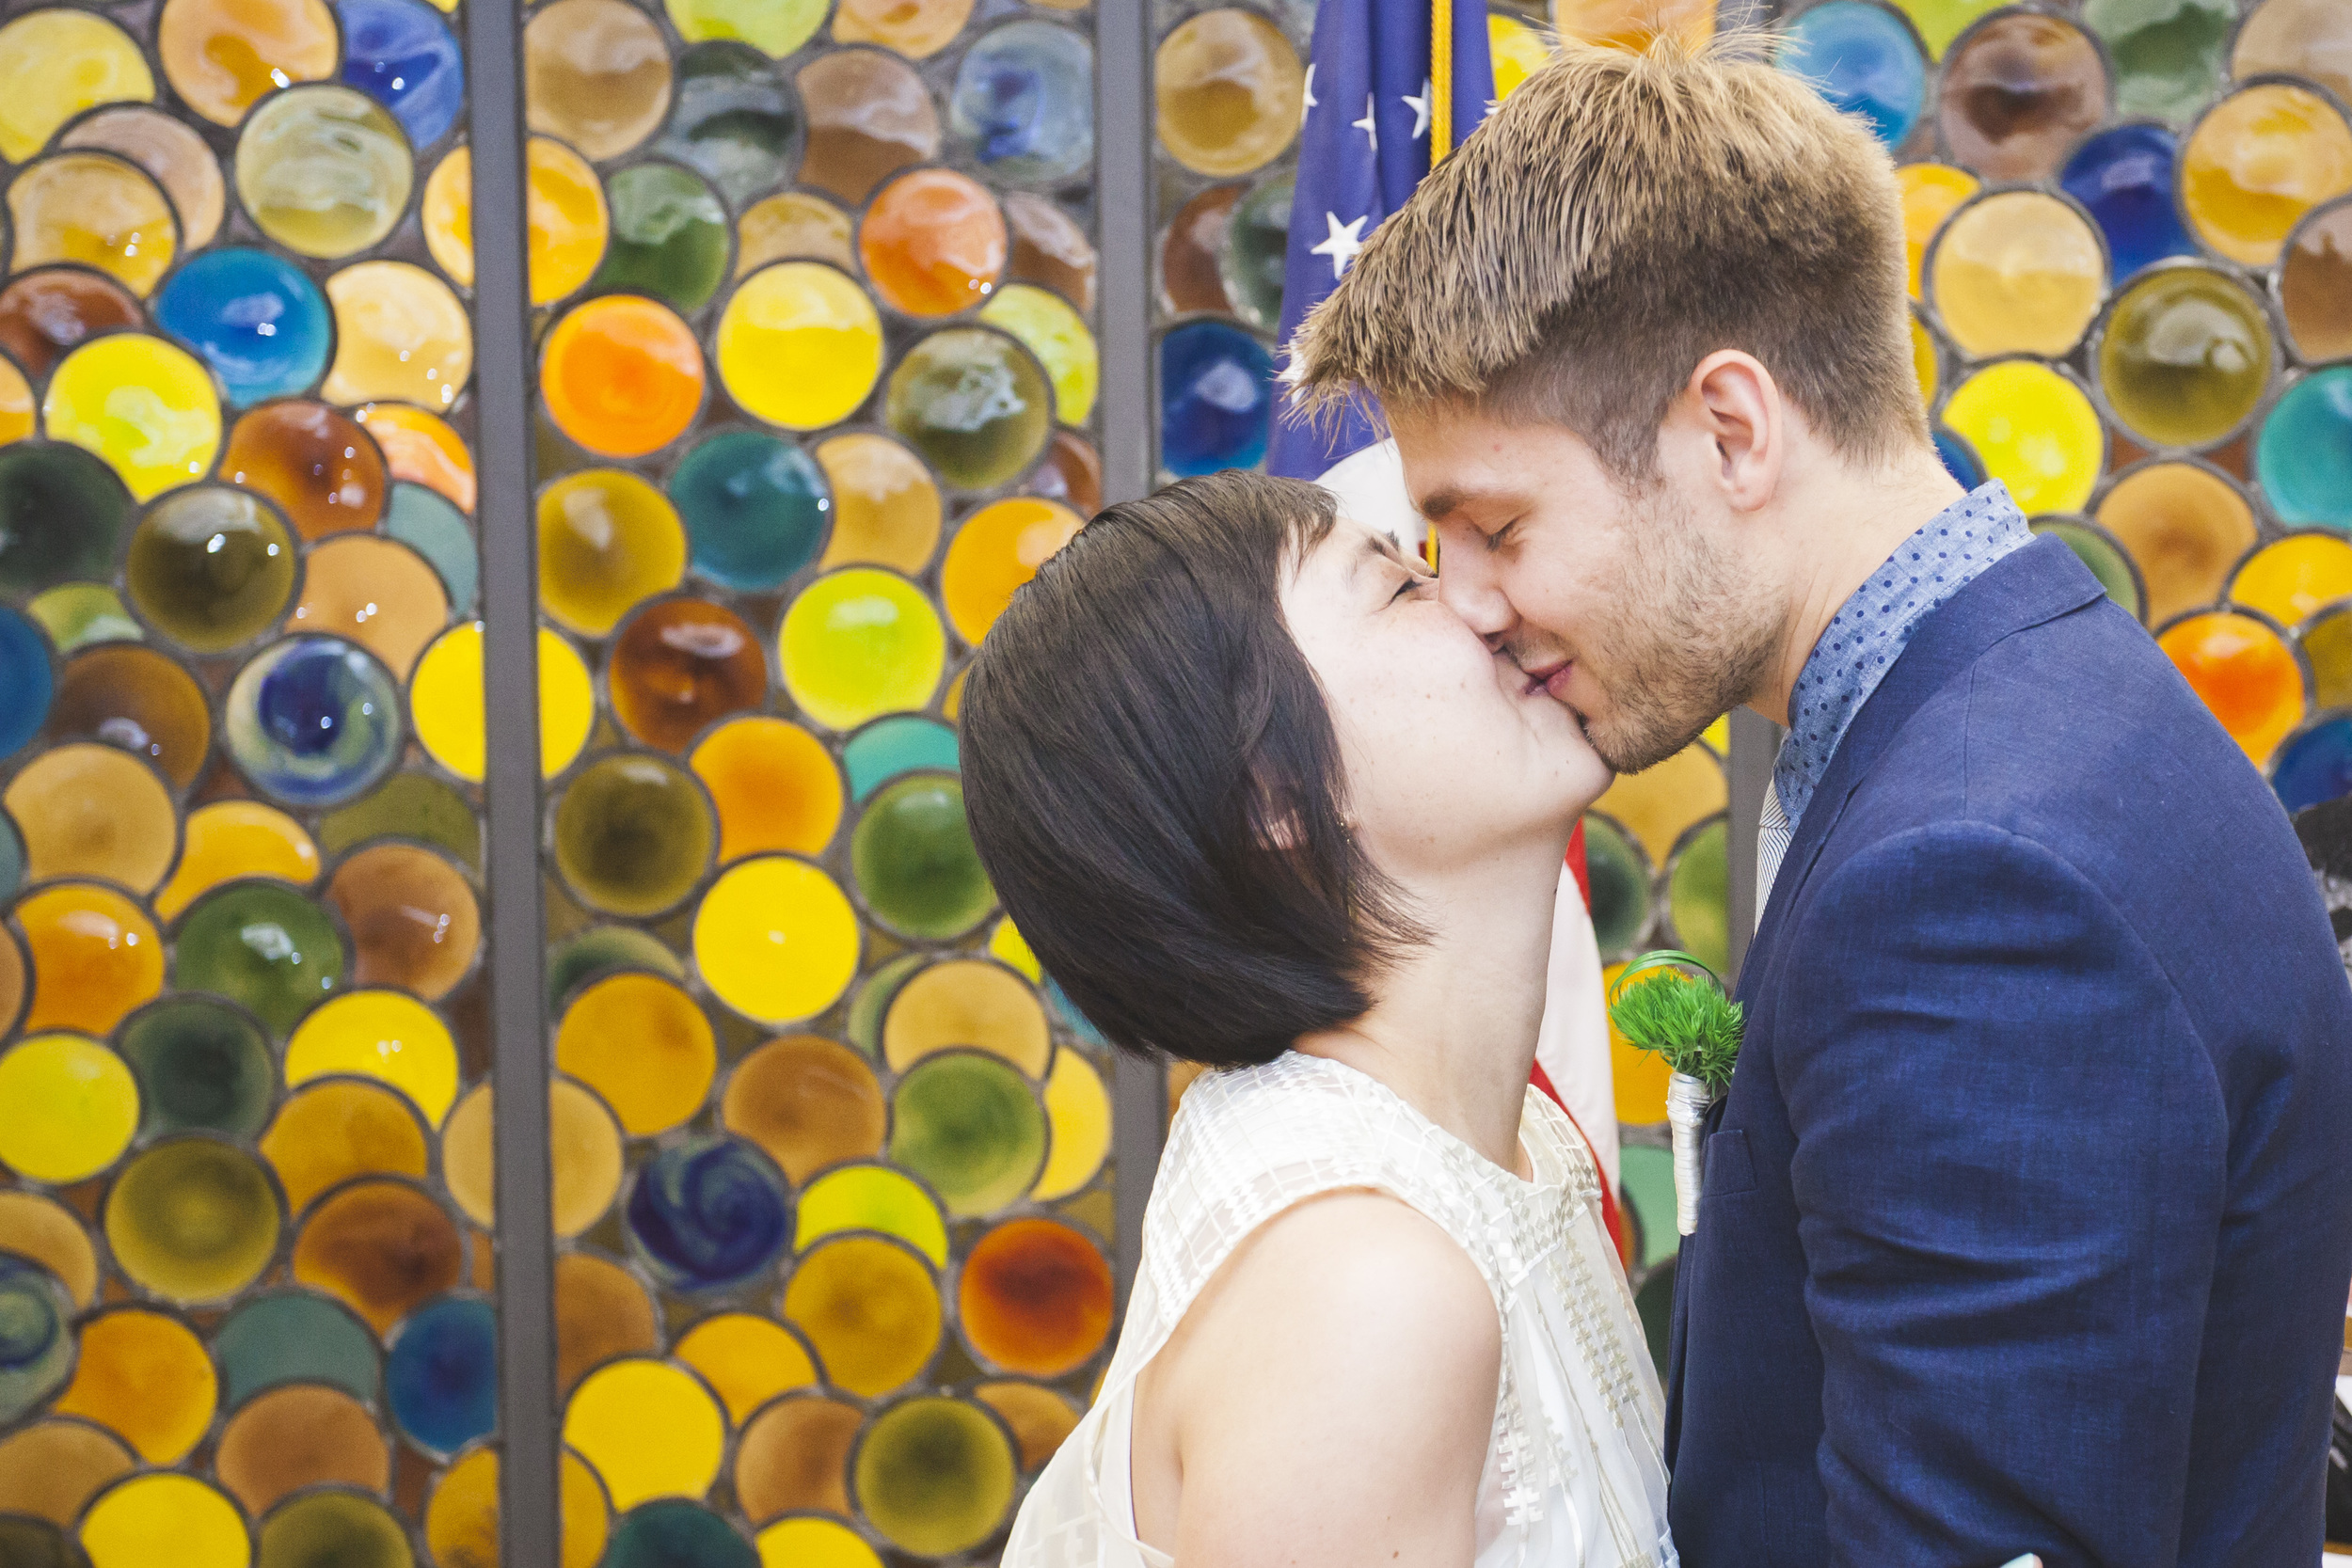 A very short and sweet ceremony ends with a kiss.